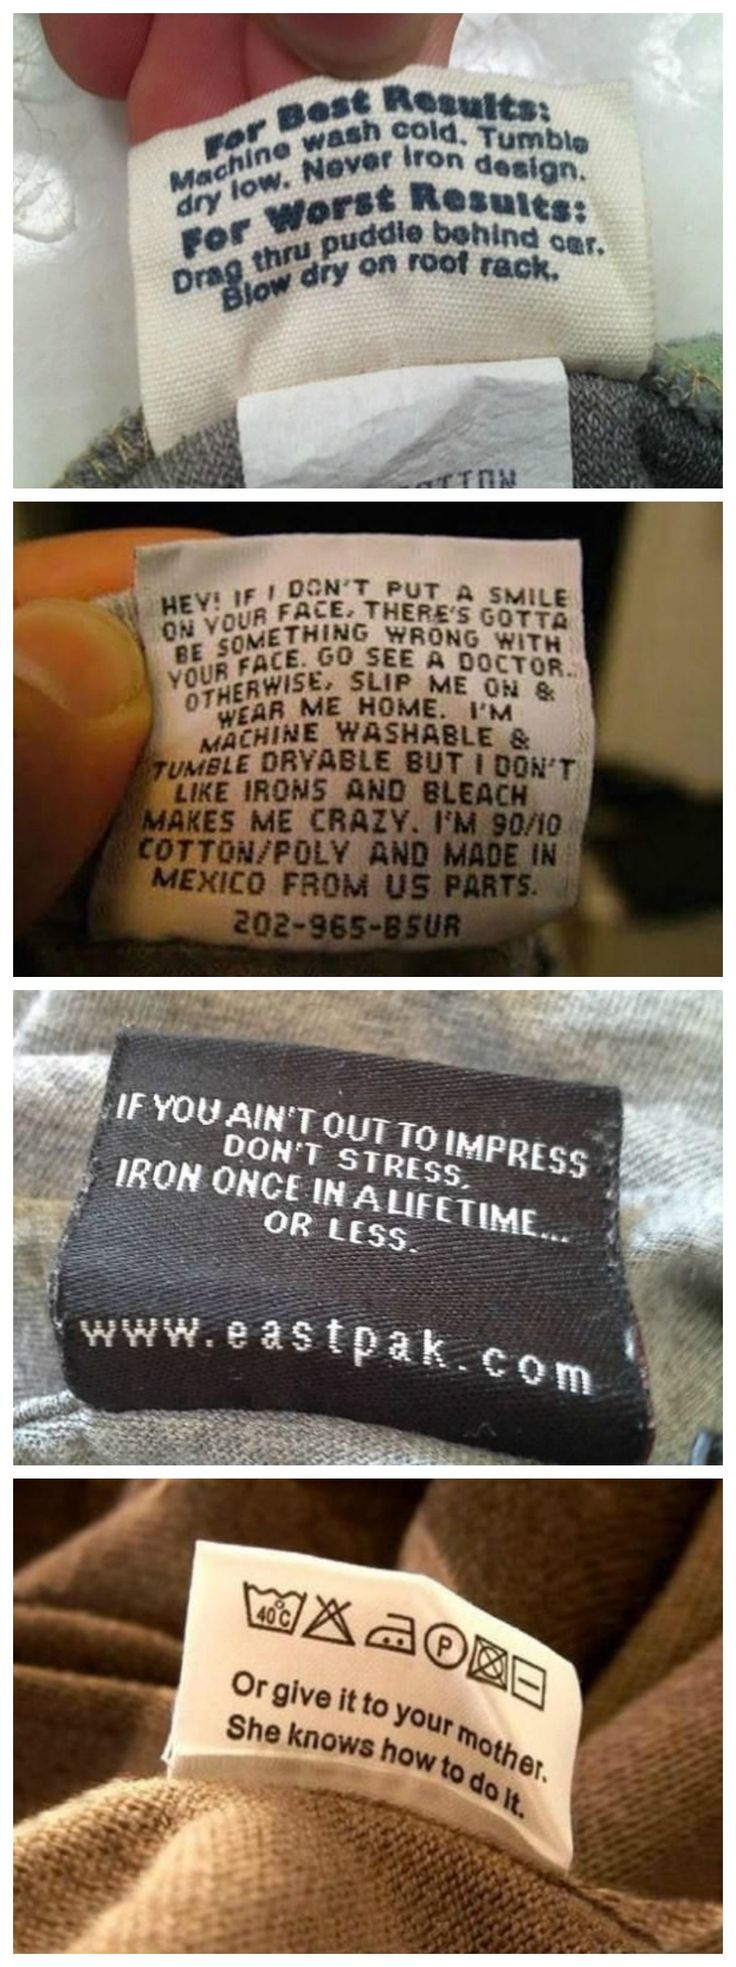 27 Hilarious Clothing Labels that will make you smile. I needed a good laugh today :))